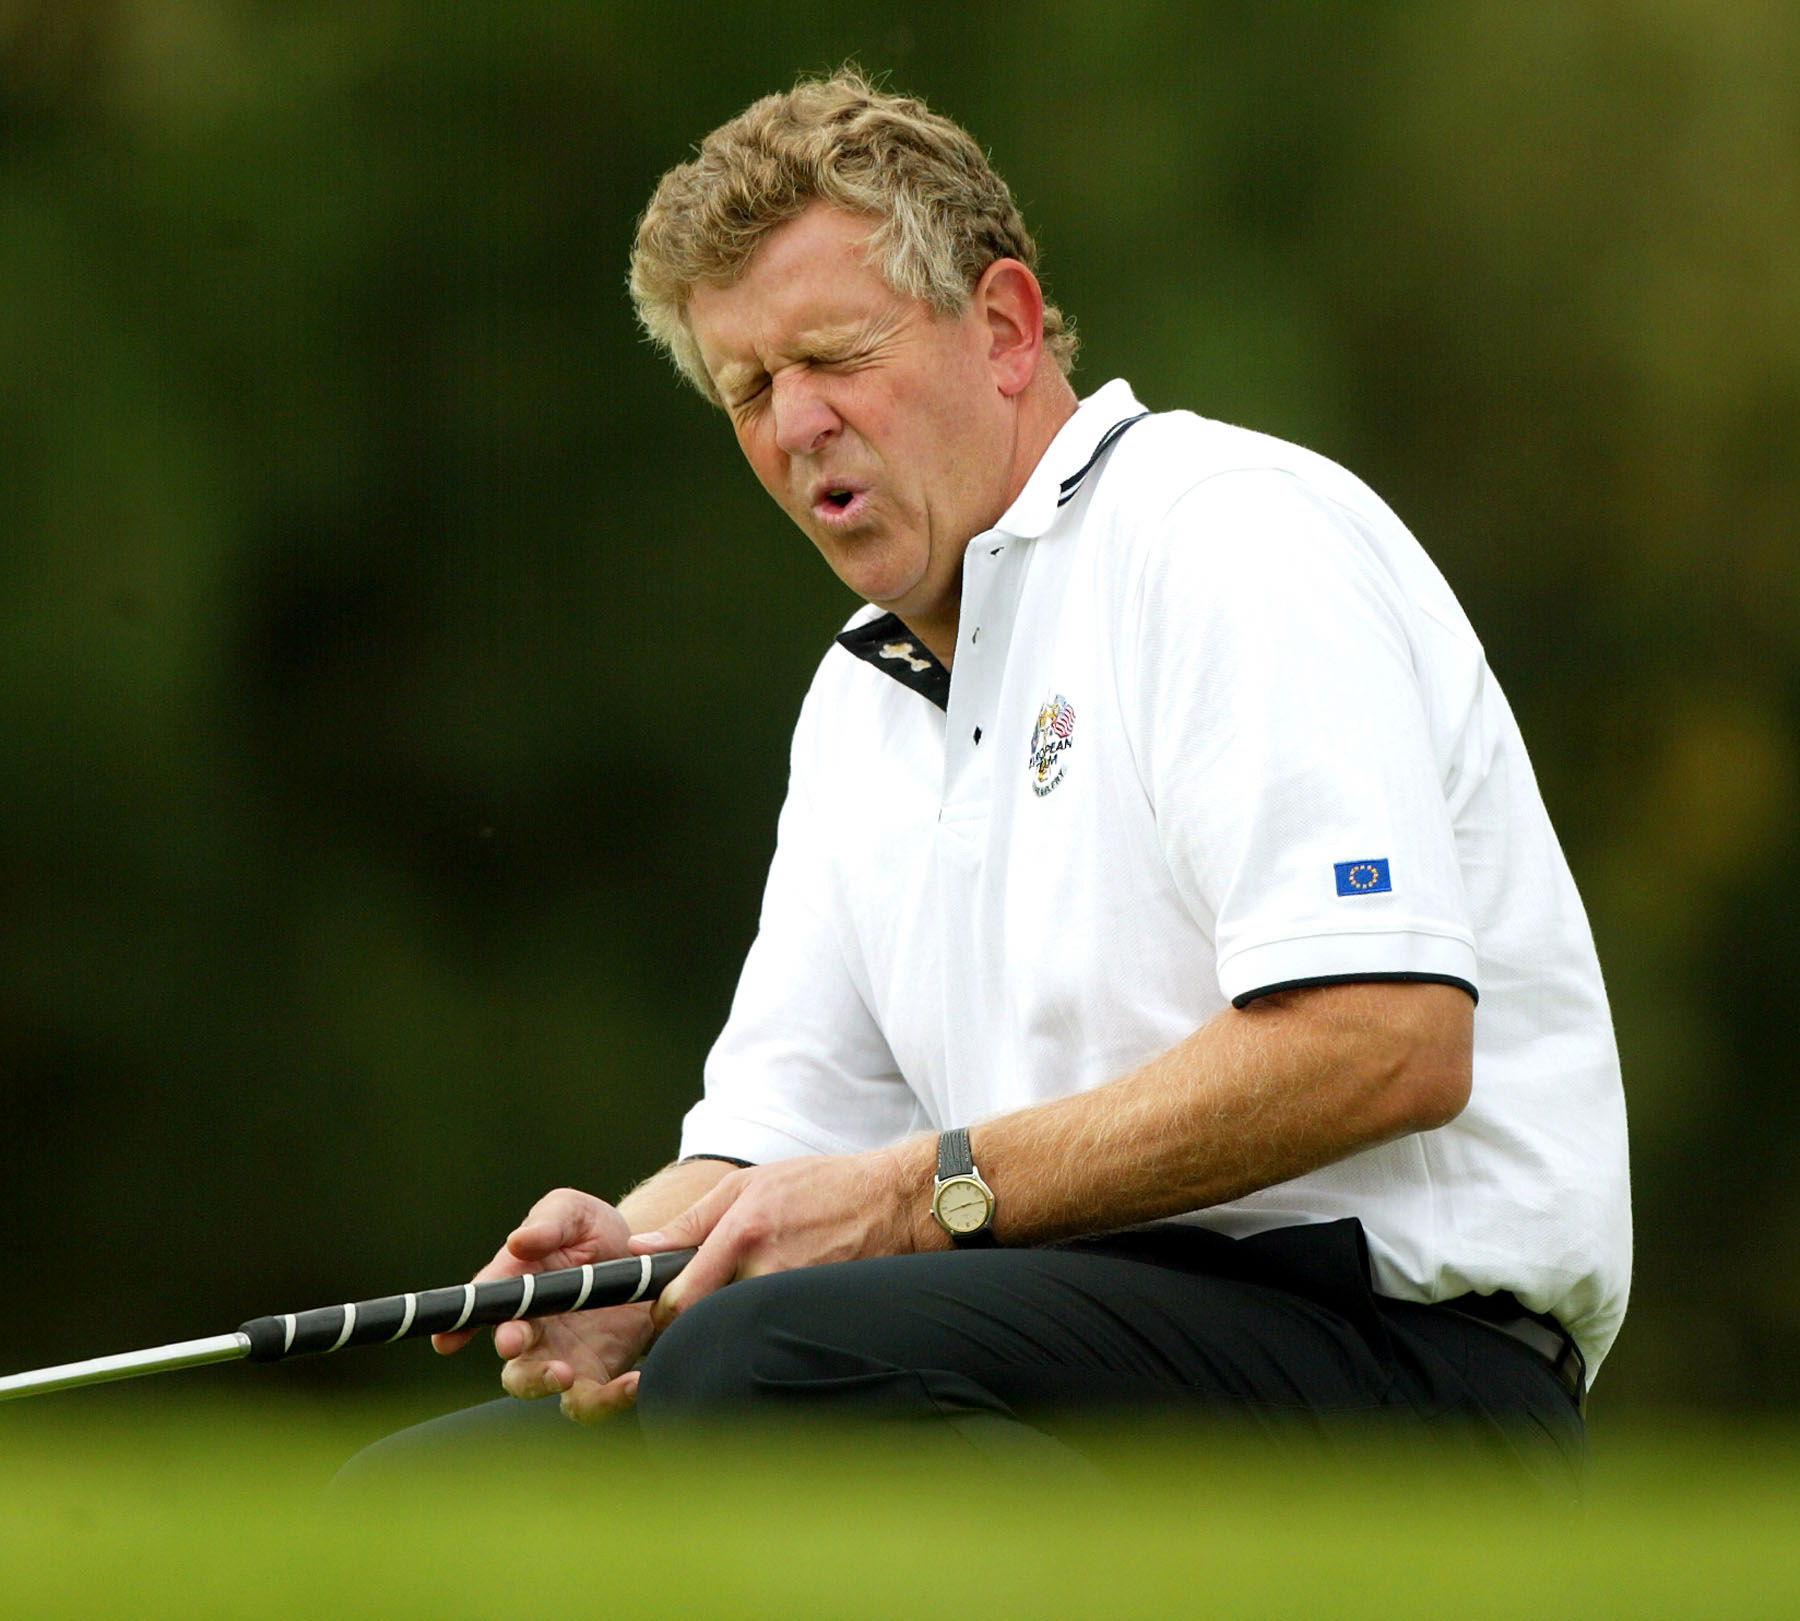 Colin Montgomerie after missing a putt during the 2002 Ryder Cup.